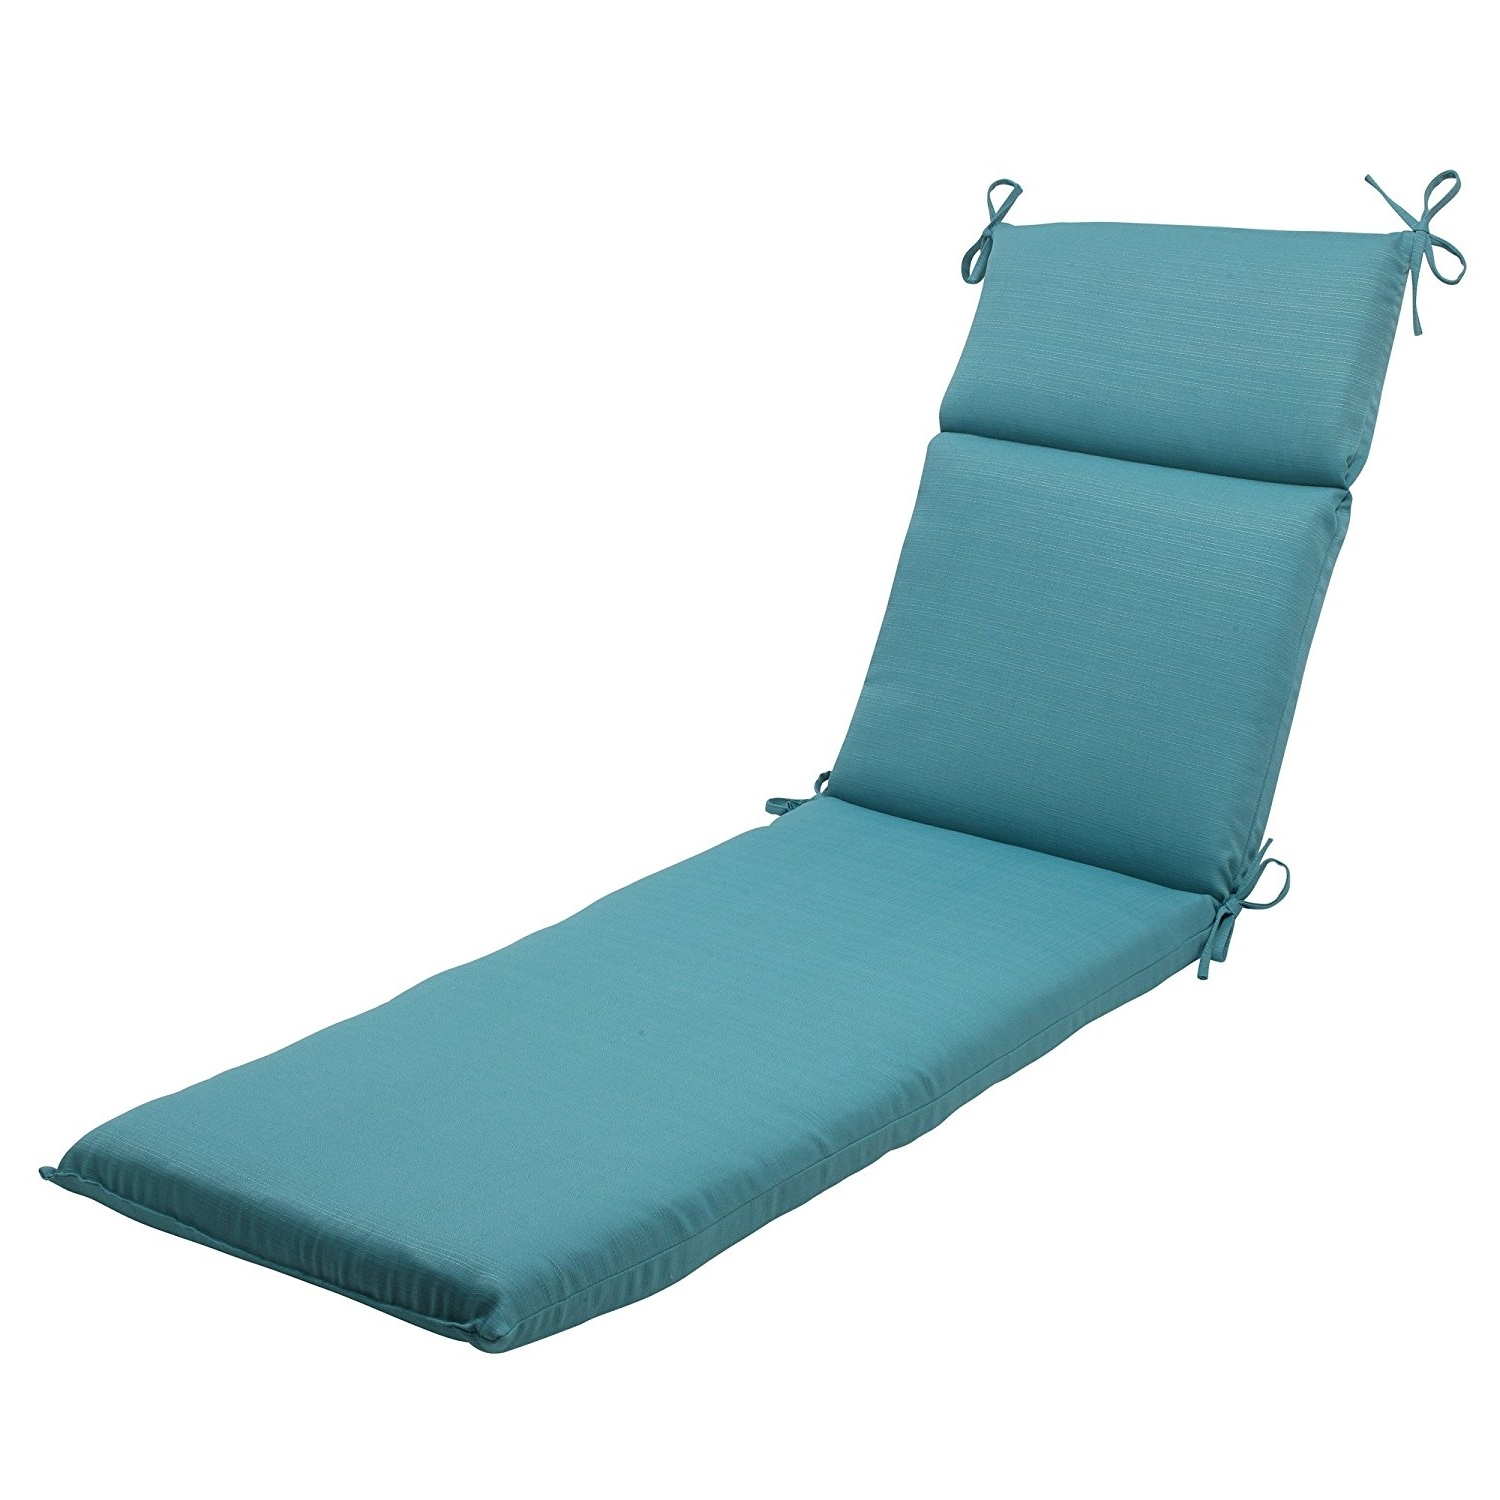 Favorite Outdoor Chaise Cushions Intended For Amazon: Pillow Perfect Indoor/outdoor Forsyth Chaise Lounge (View 5 of 15)